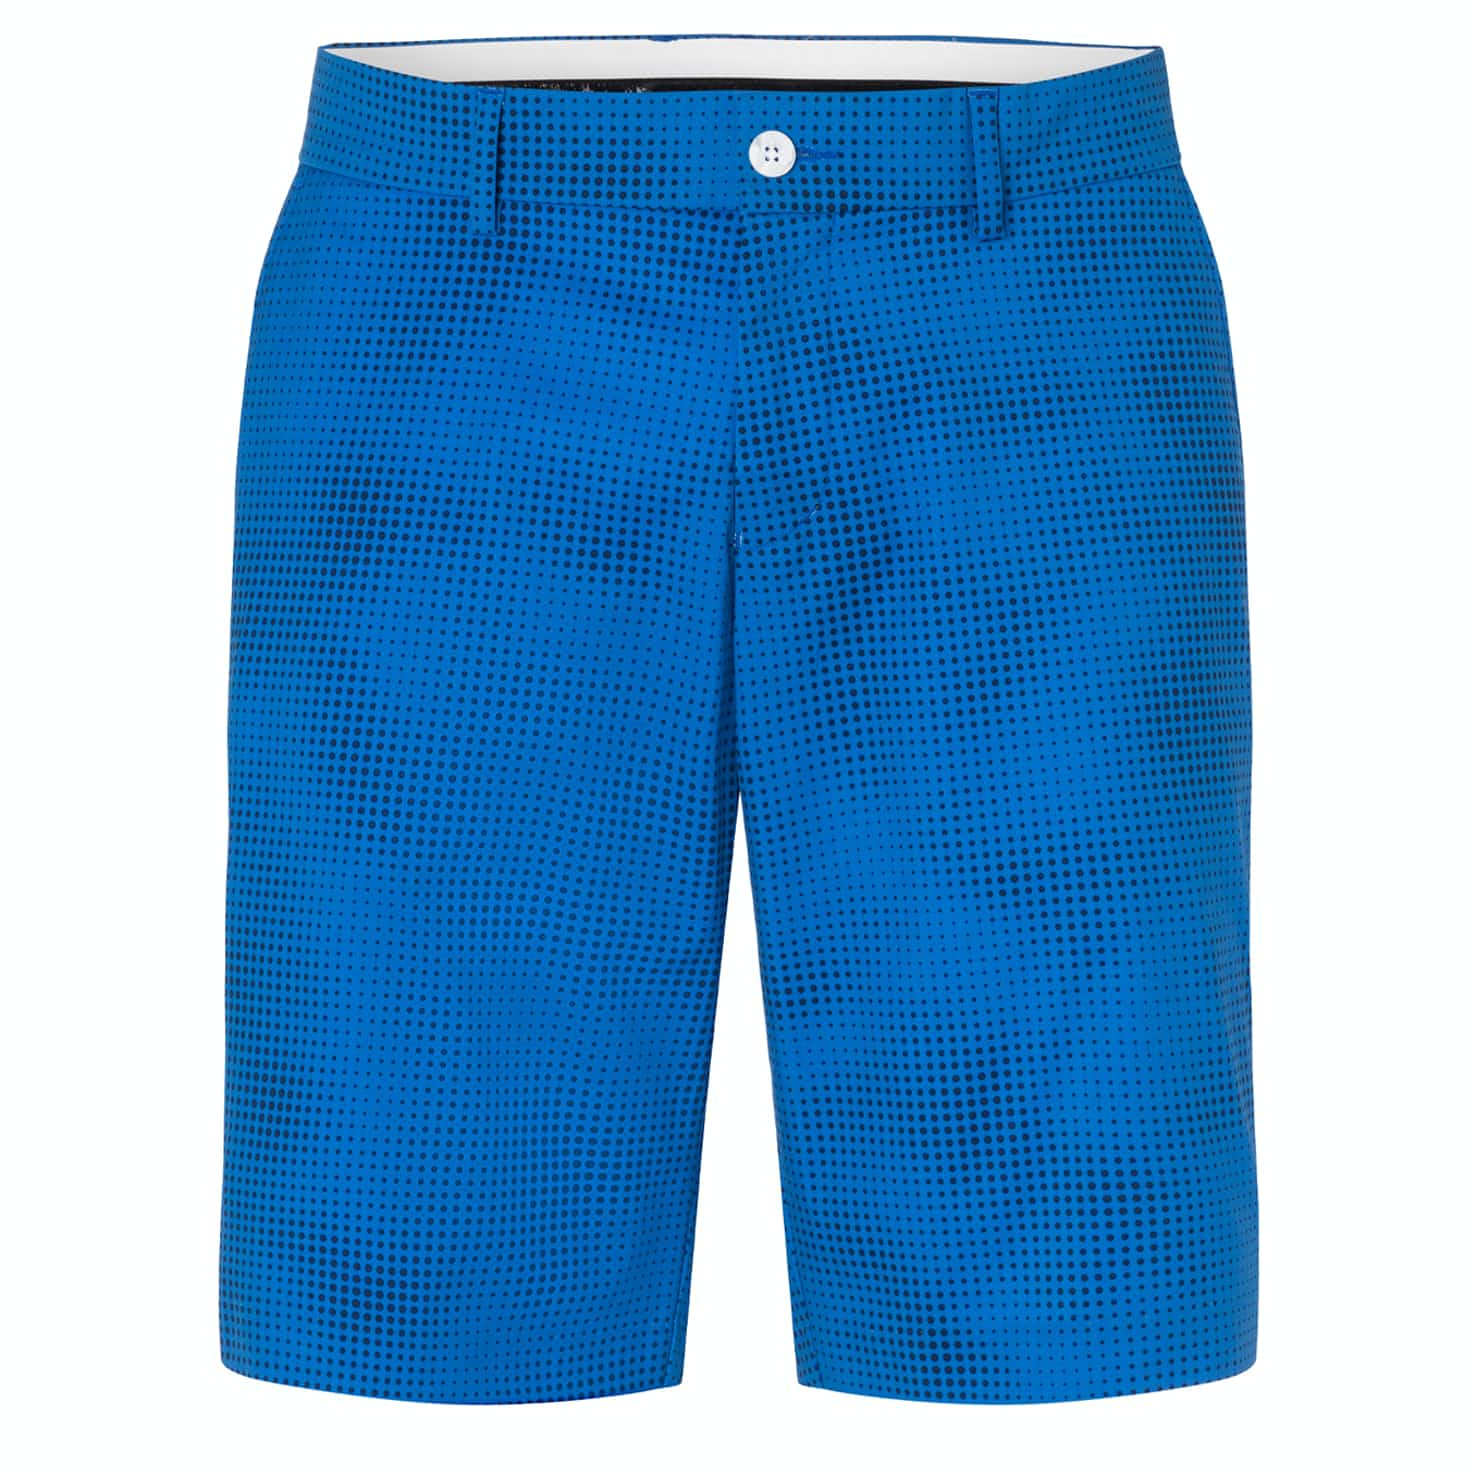 Inaction Printed Shorts Pacific Blue - SS19